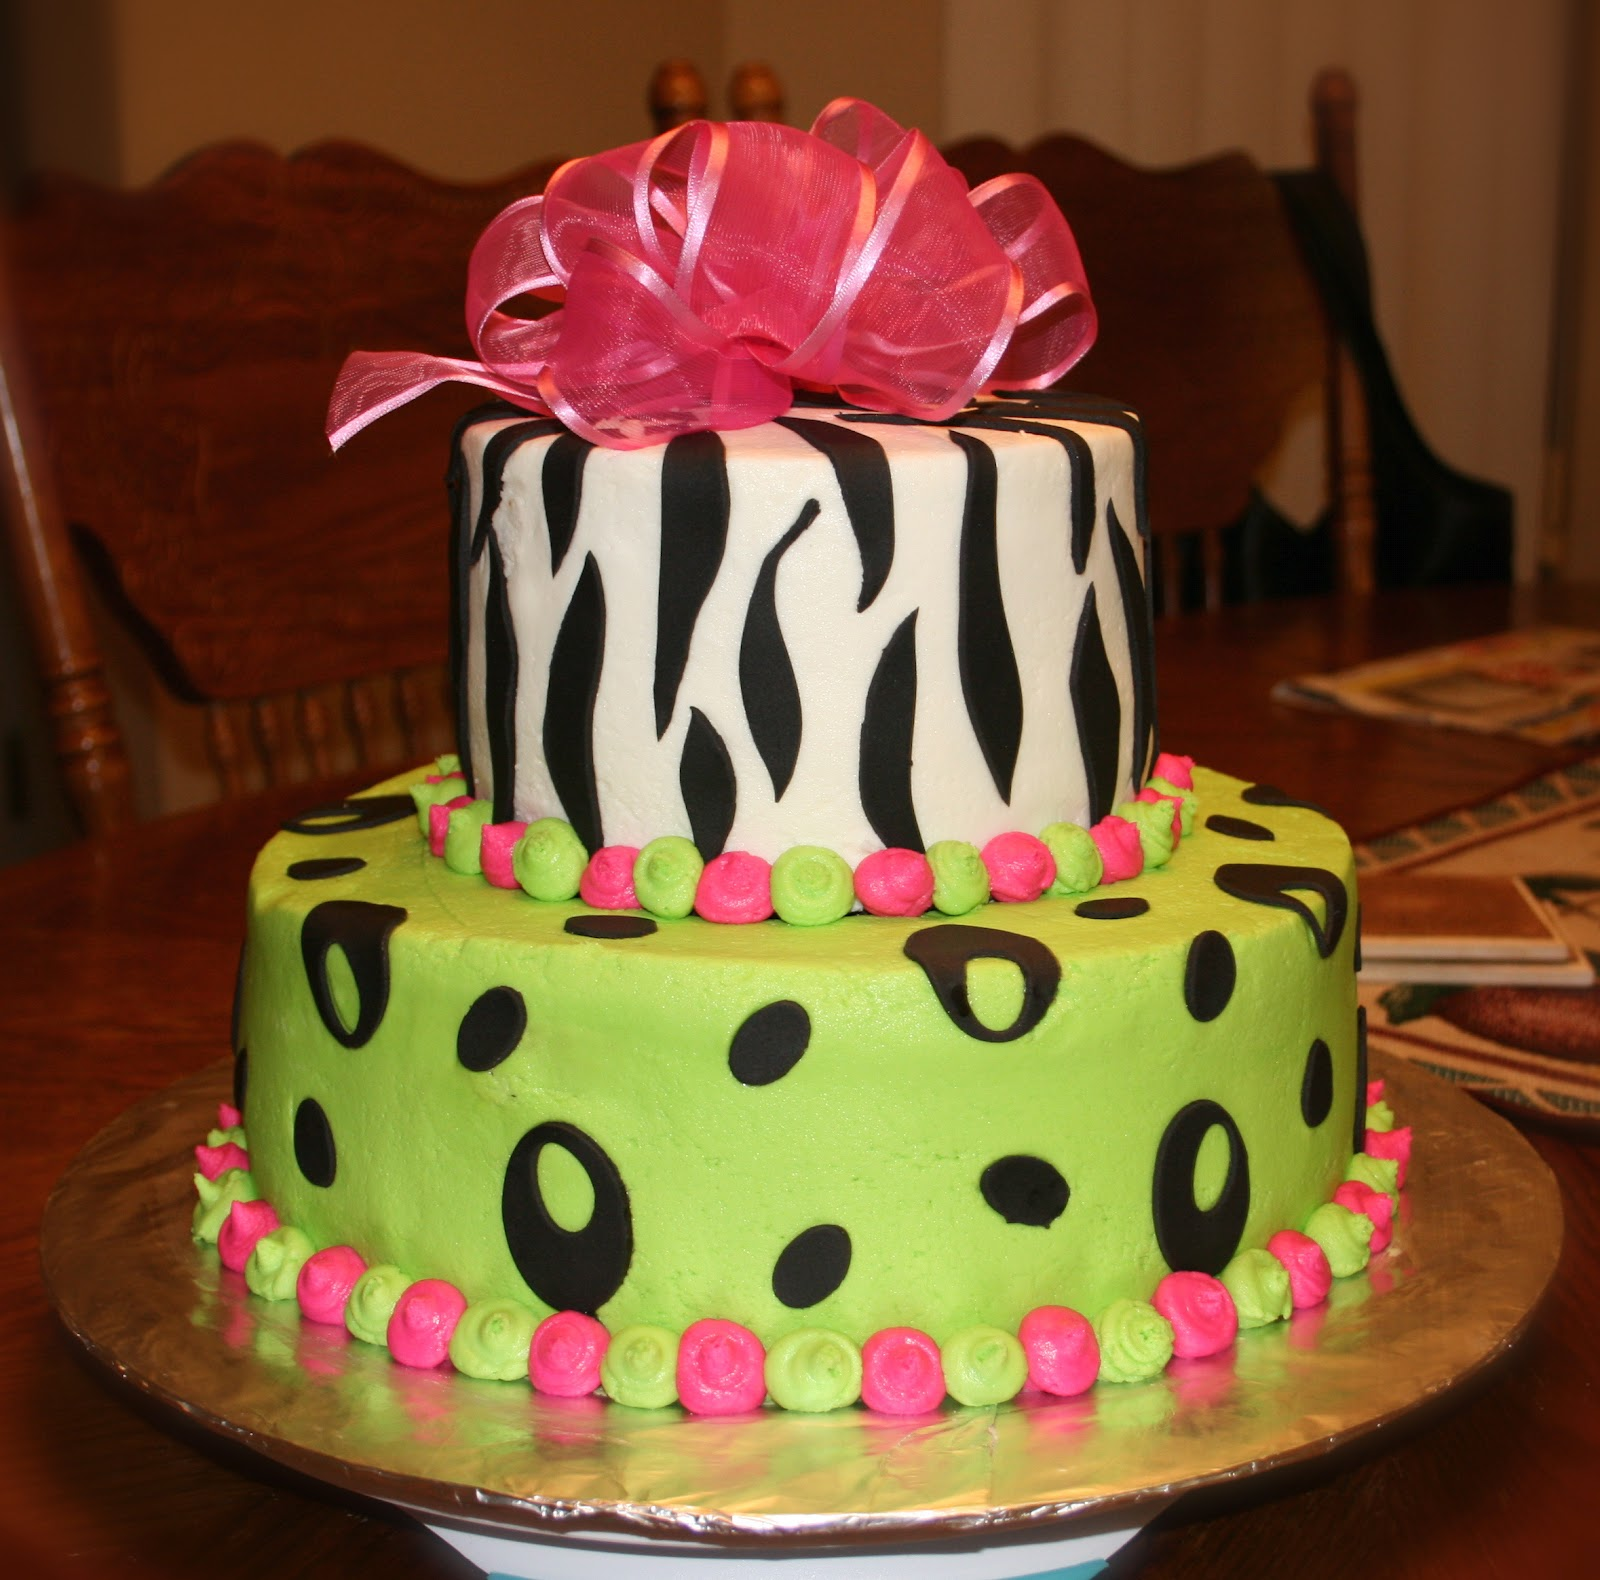 Green Zebra Cake http://sugarspellcakes.blogspot.com/2012/02/hot-pink-lime-green-zebra-cake.html